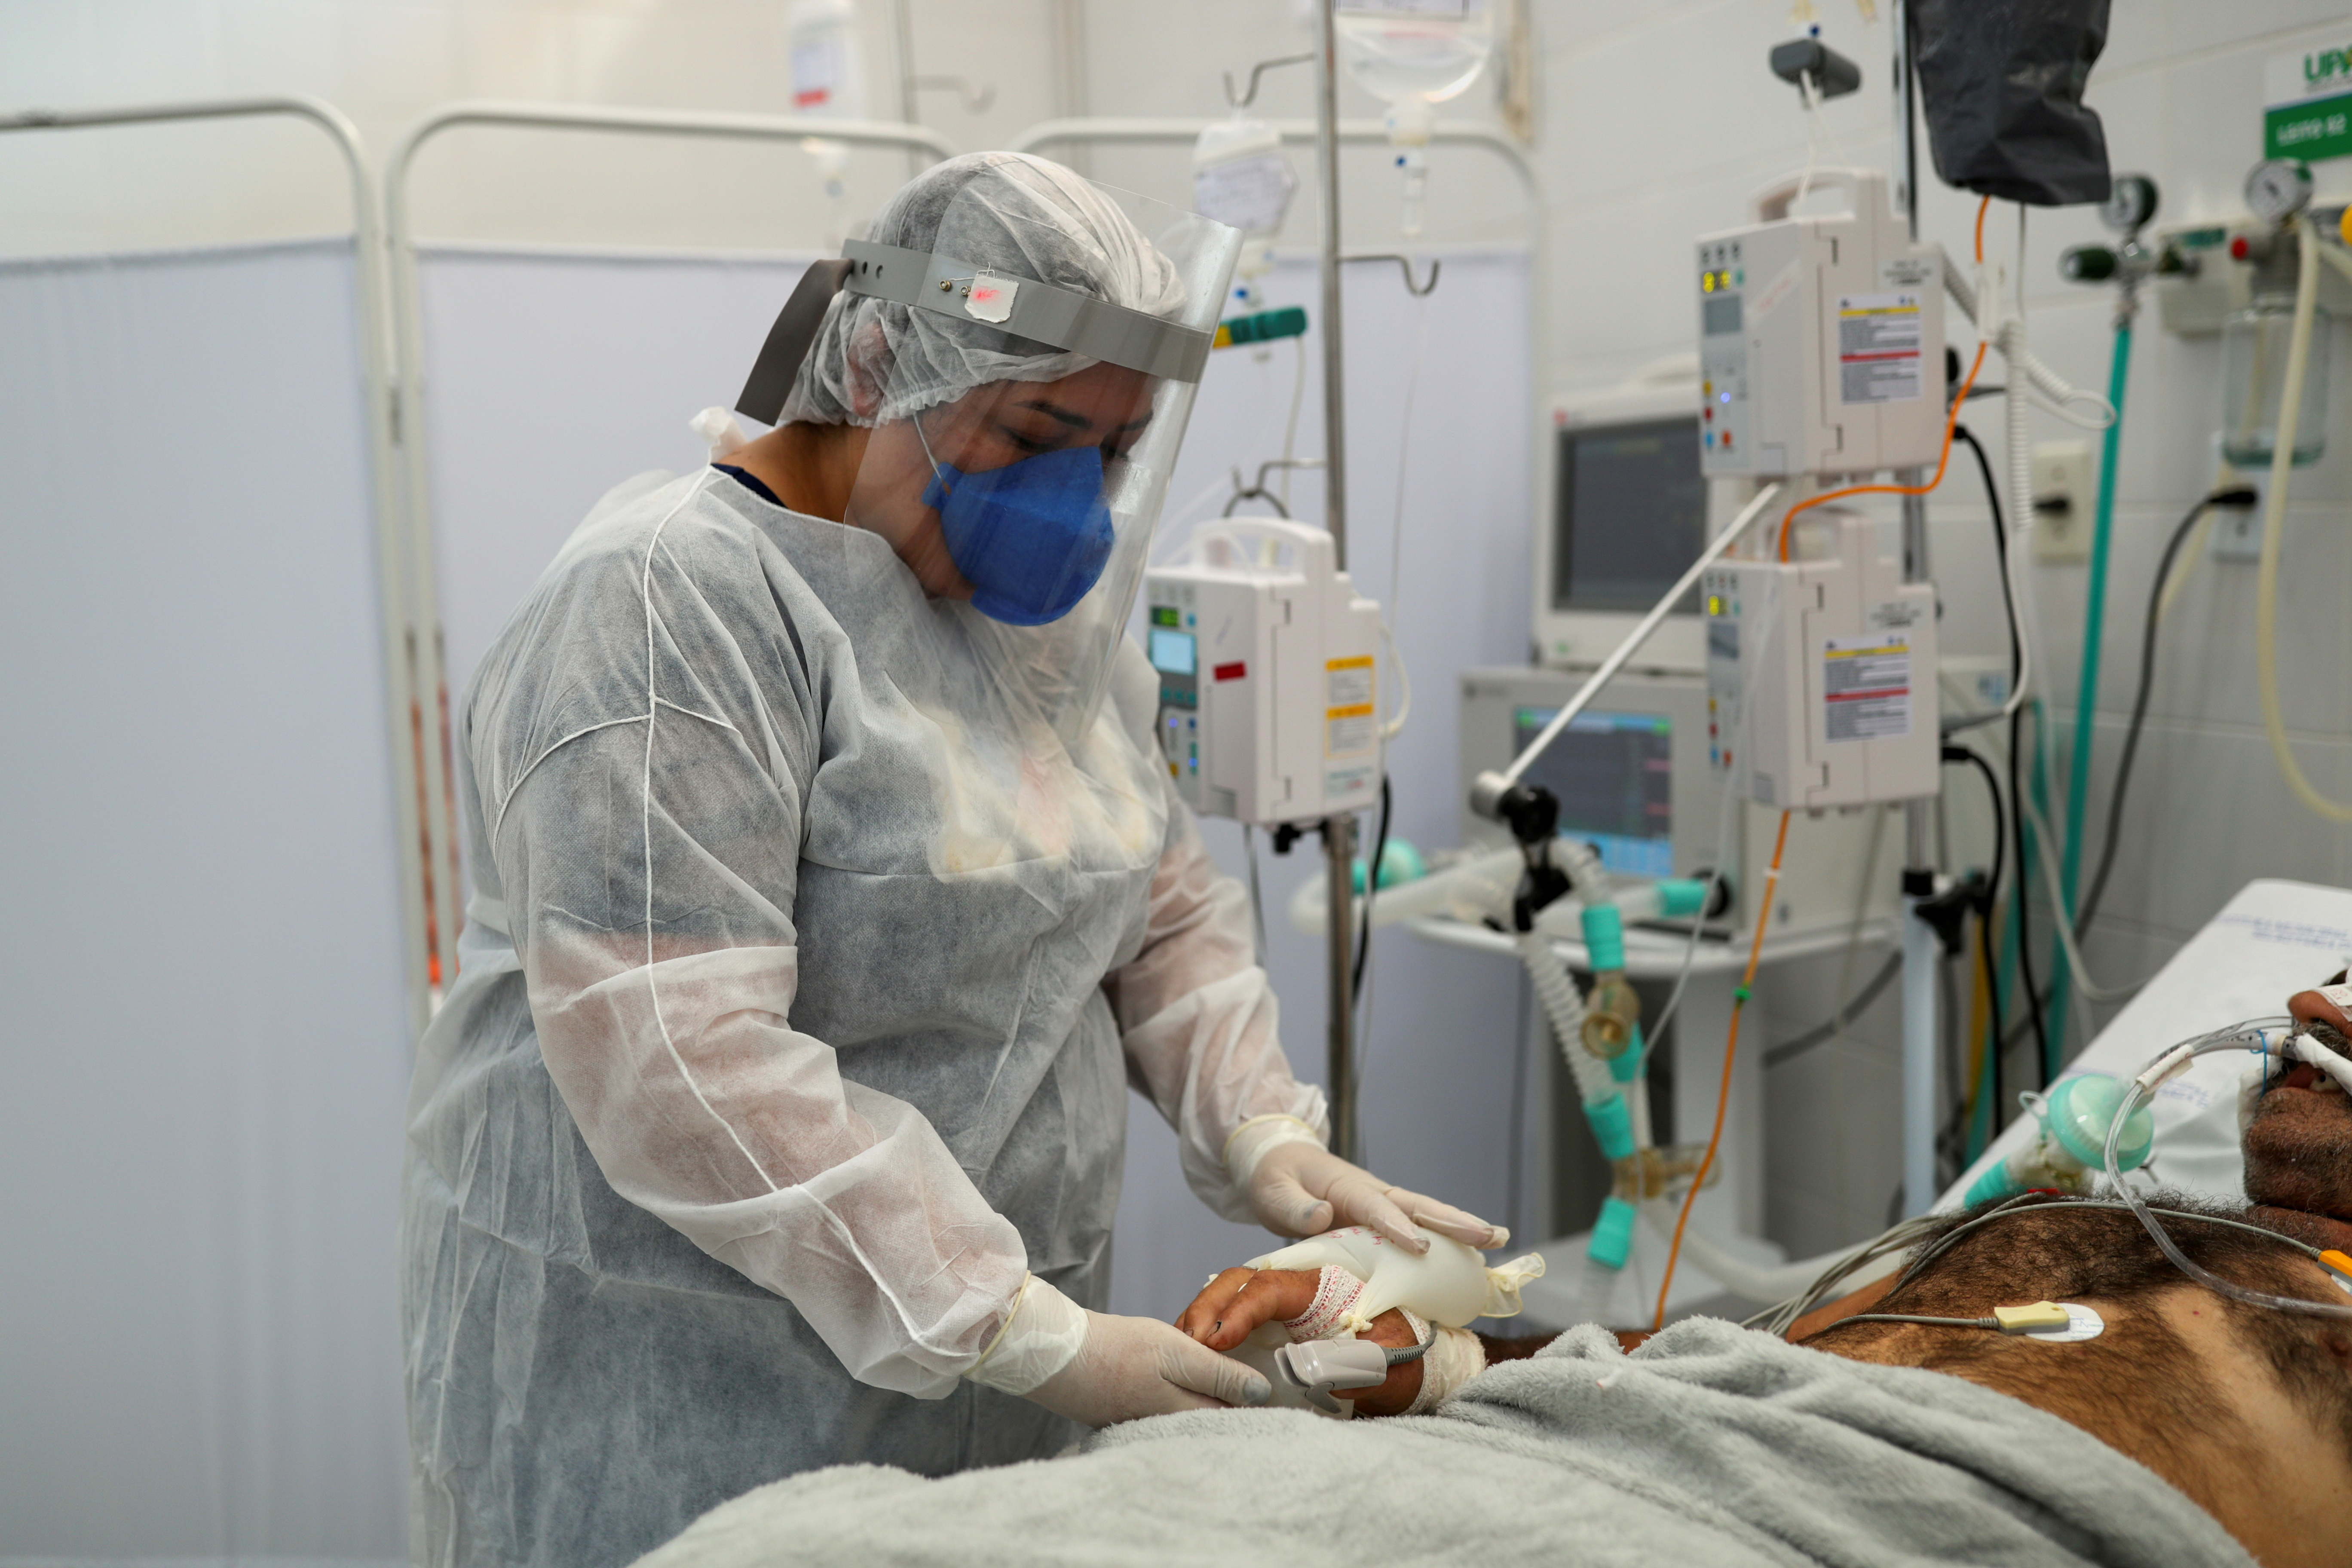 Nursing technician Semei Araujo Cunha puts what she calls 'maozinha do amor' or 'hands of love', warm water-filled gloves, on a coronavirus disease (COVID-19) patient intubated at a UPA (Emergency Service Unit) in Sao Carlos, Sao Paulo state, Brazil April 16, 2021. REUTERS/Amanda Perobelli